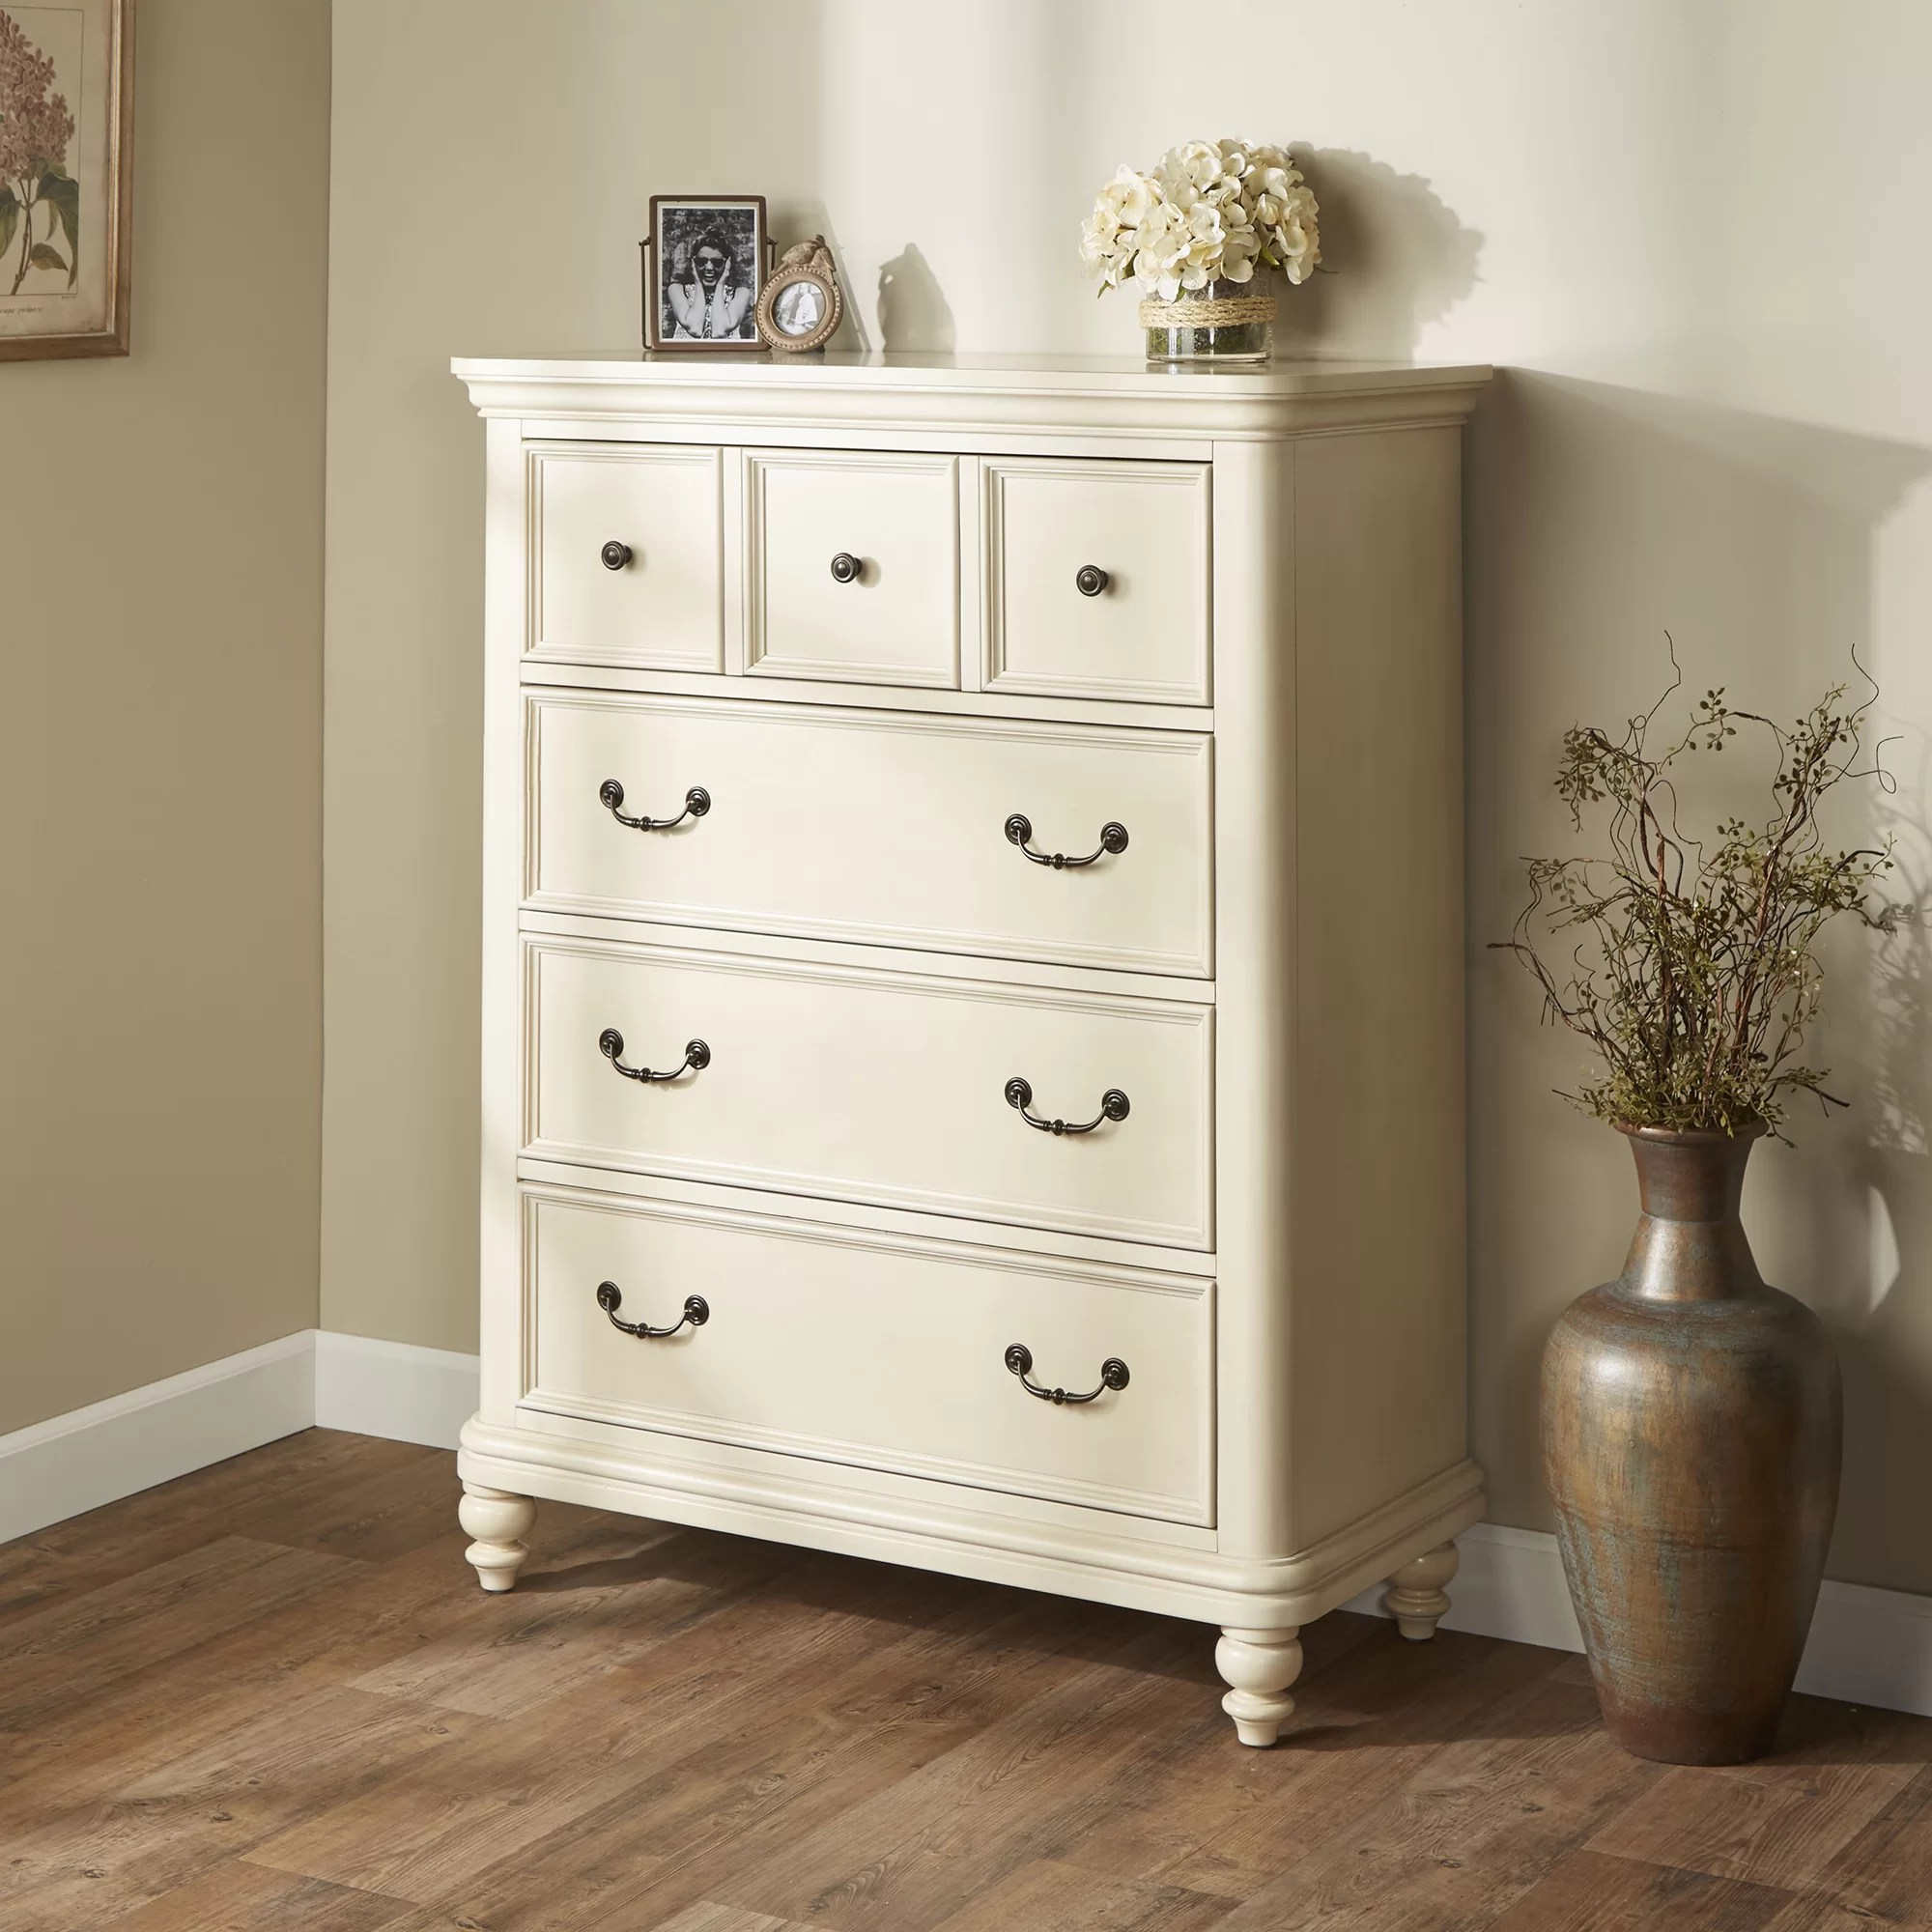 6 Drawer Chest Of Drawers Gerdie 6 Drawer Chest